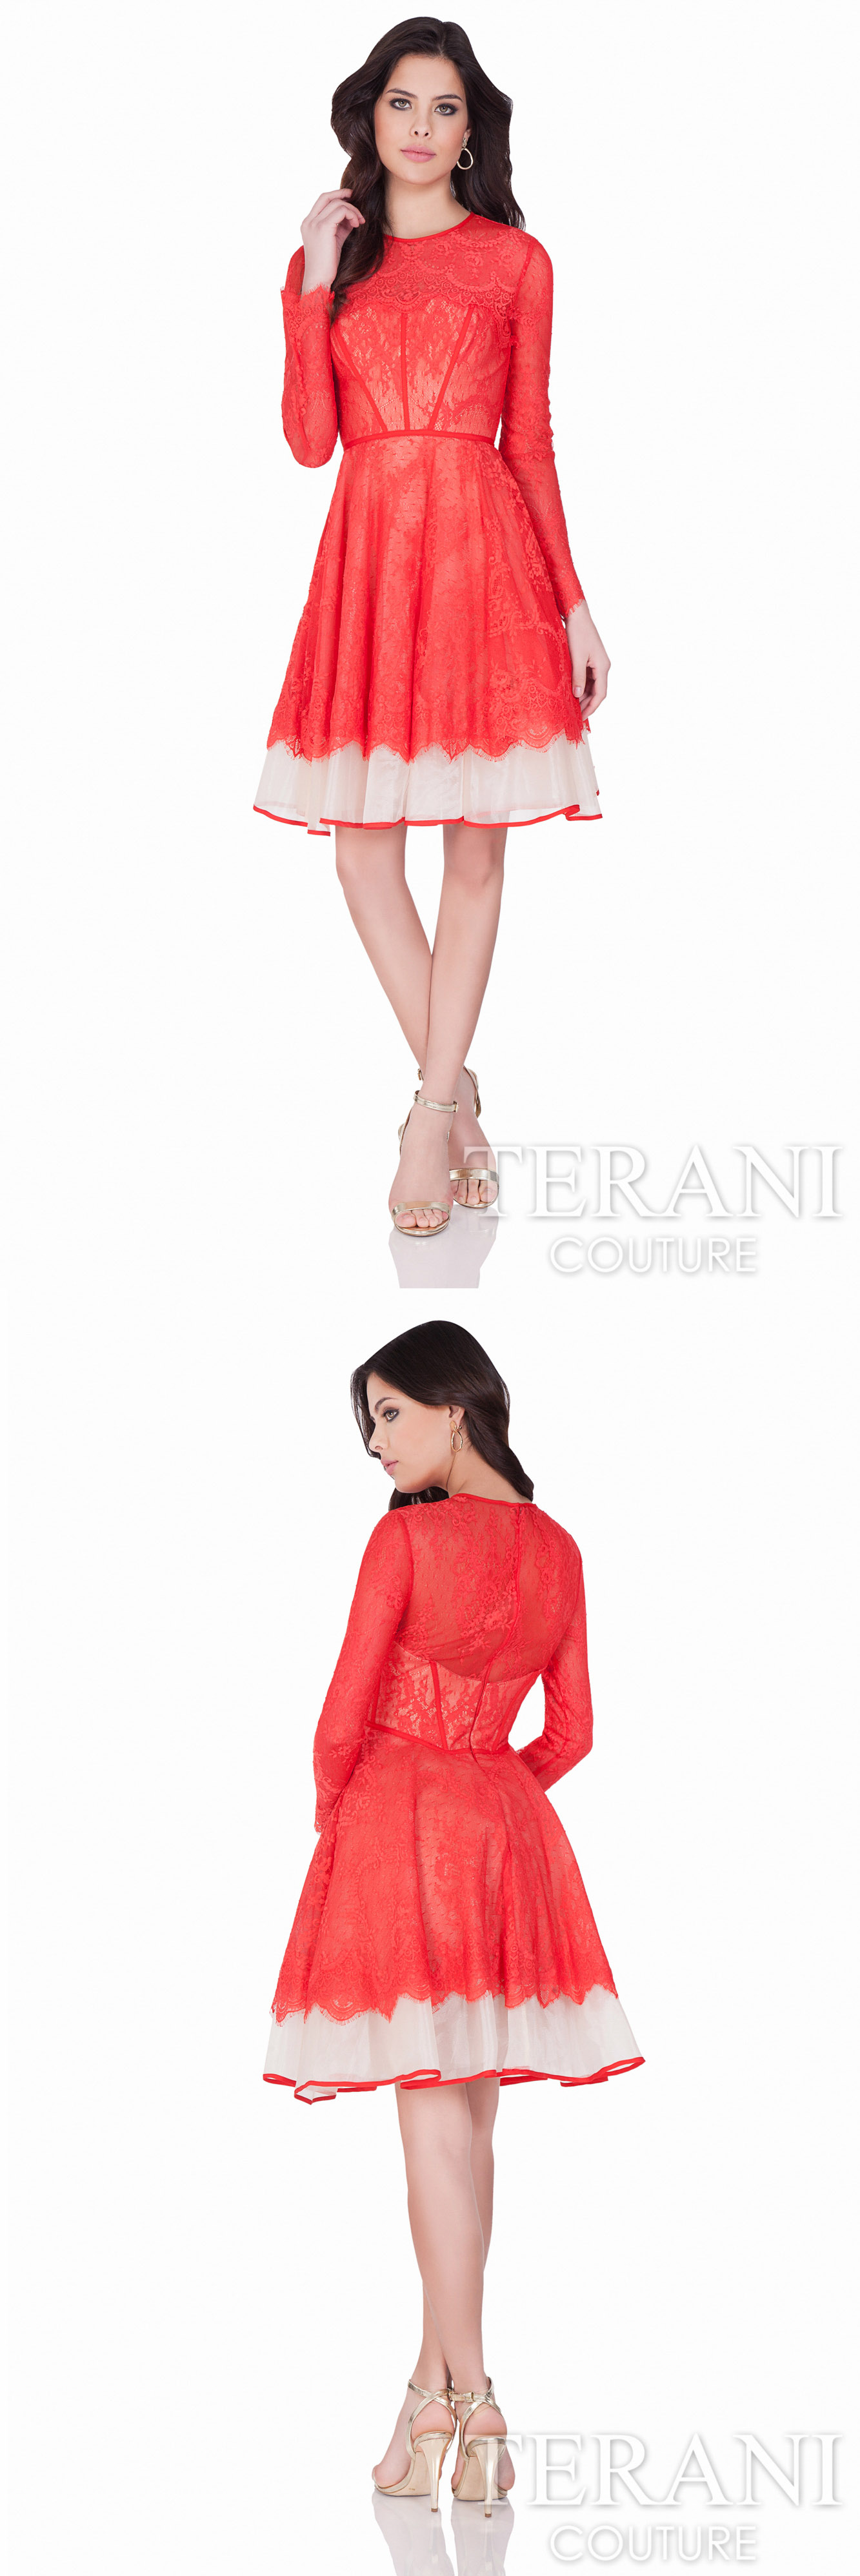 Terani Couture luxurious #cocktaildress from border lace top to ...